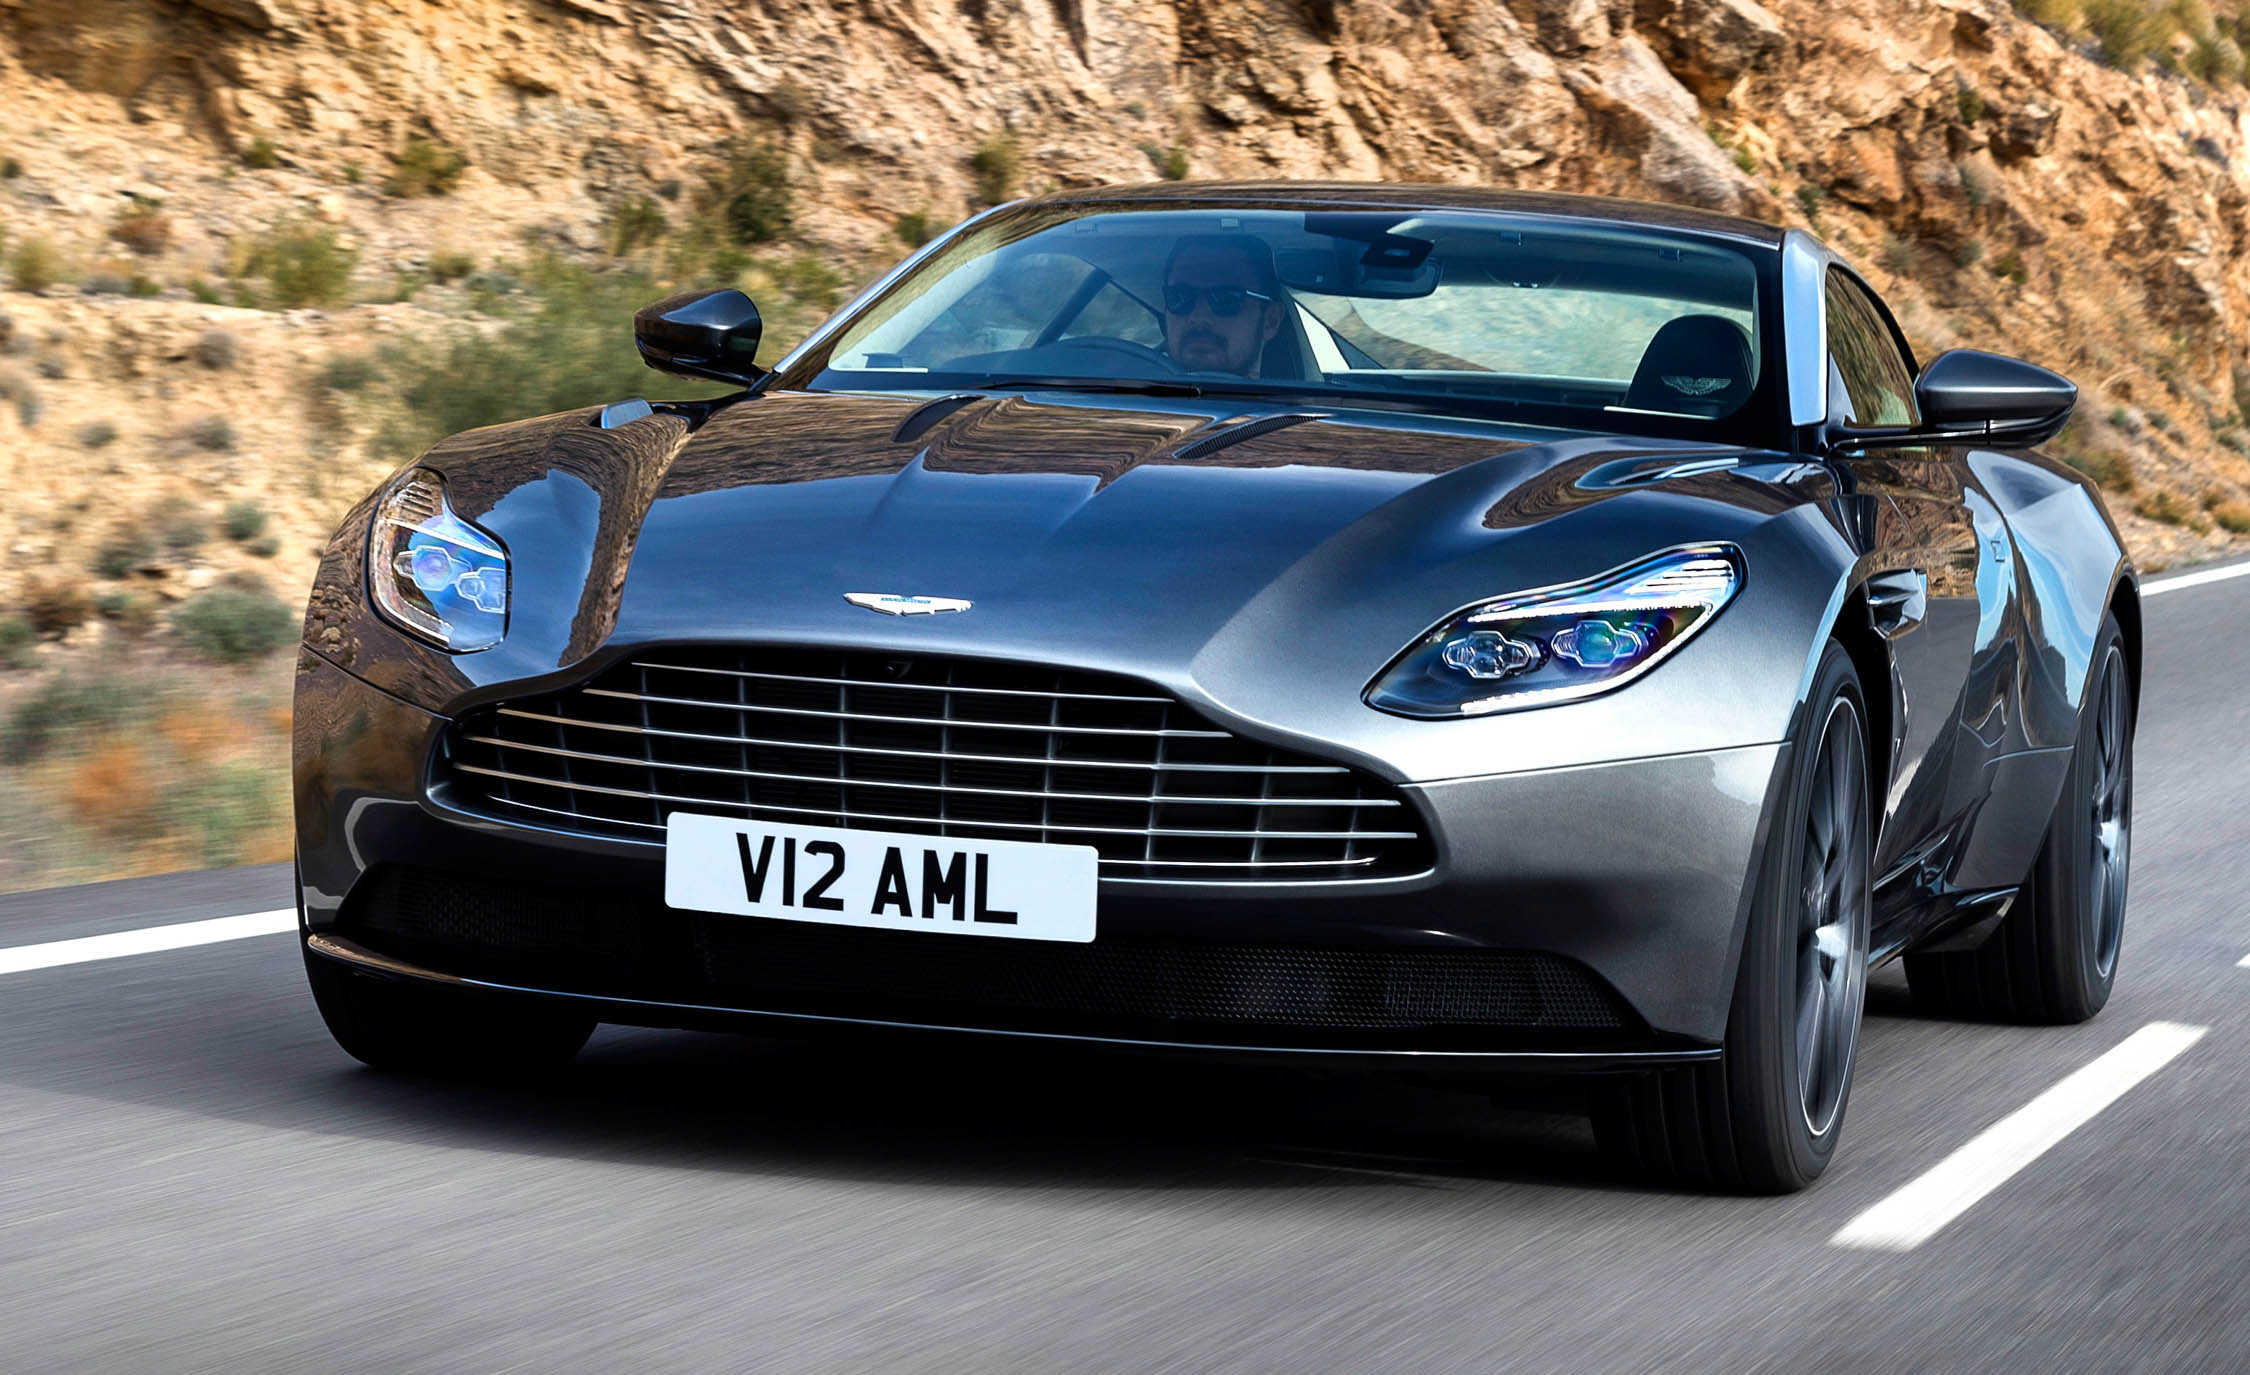 2017 Aston Martin Db11 Test Drive Front End (View 7 of 22)